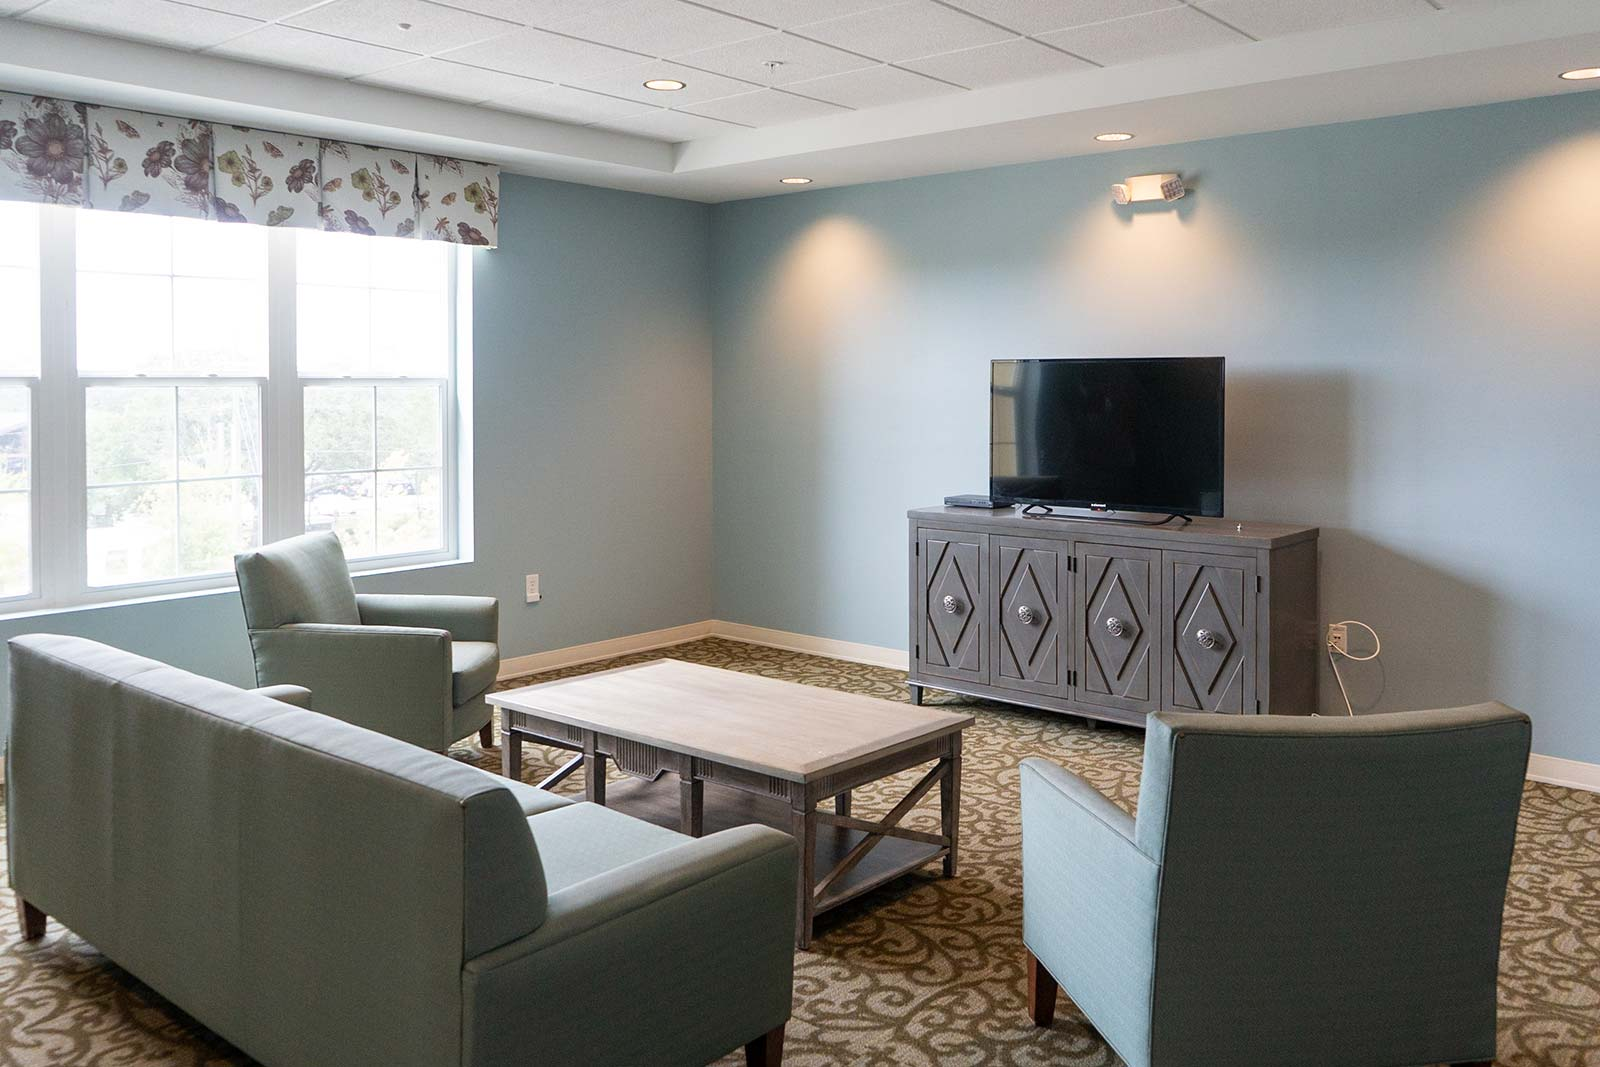 Gathering area with TV, couches and chairs at The Arbors of Gulf Breeze an Independent Living, Assisted Living and Memory Care community in Gulf Breeze, FL